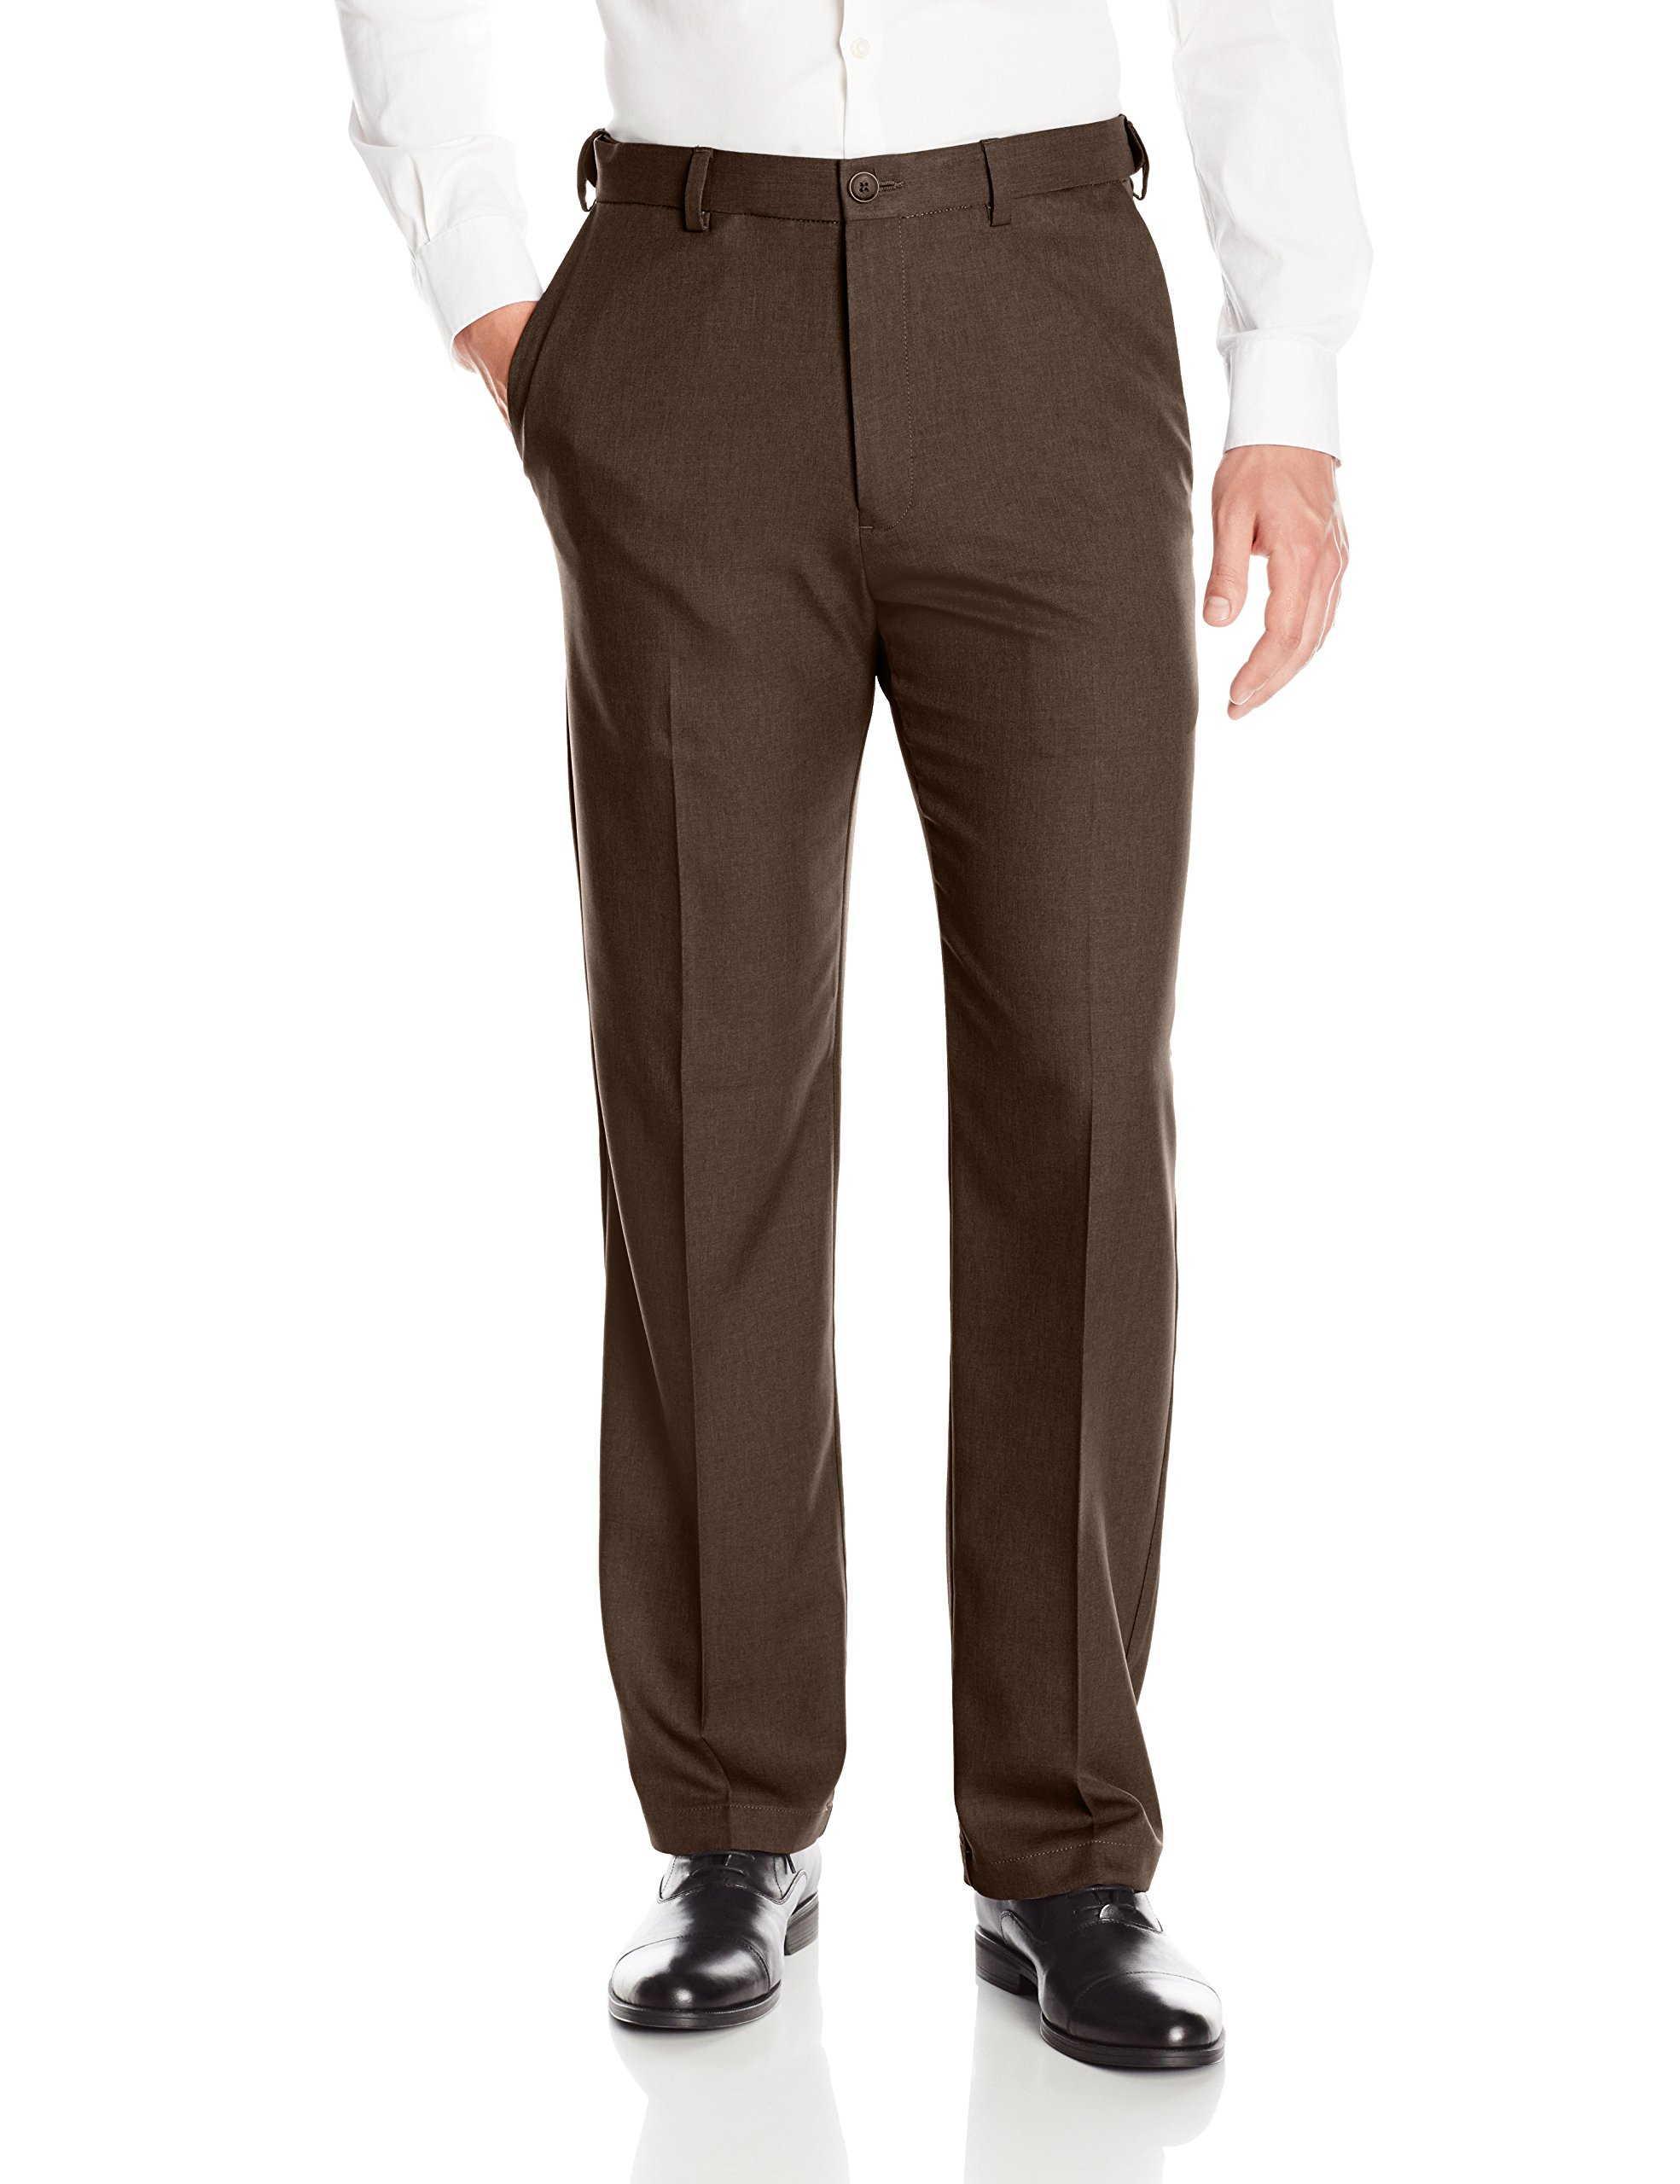 Haggar Men's Cool 18 Pro Classic Fit Flat Front Expandable Waist Pant, Brown Heather, 50Wx29L